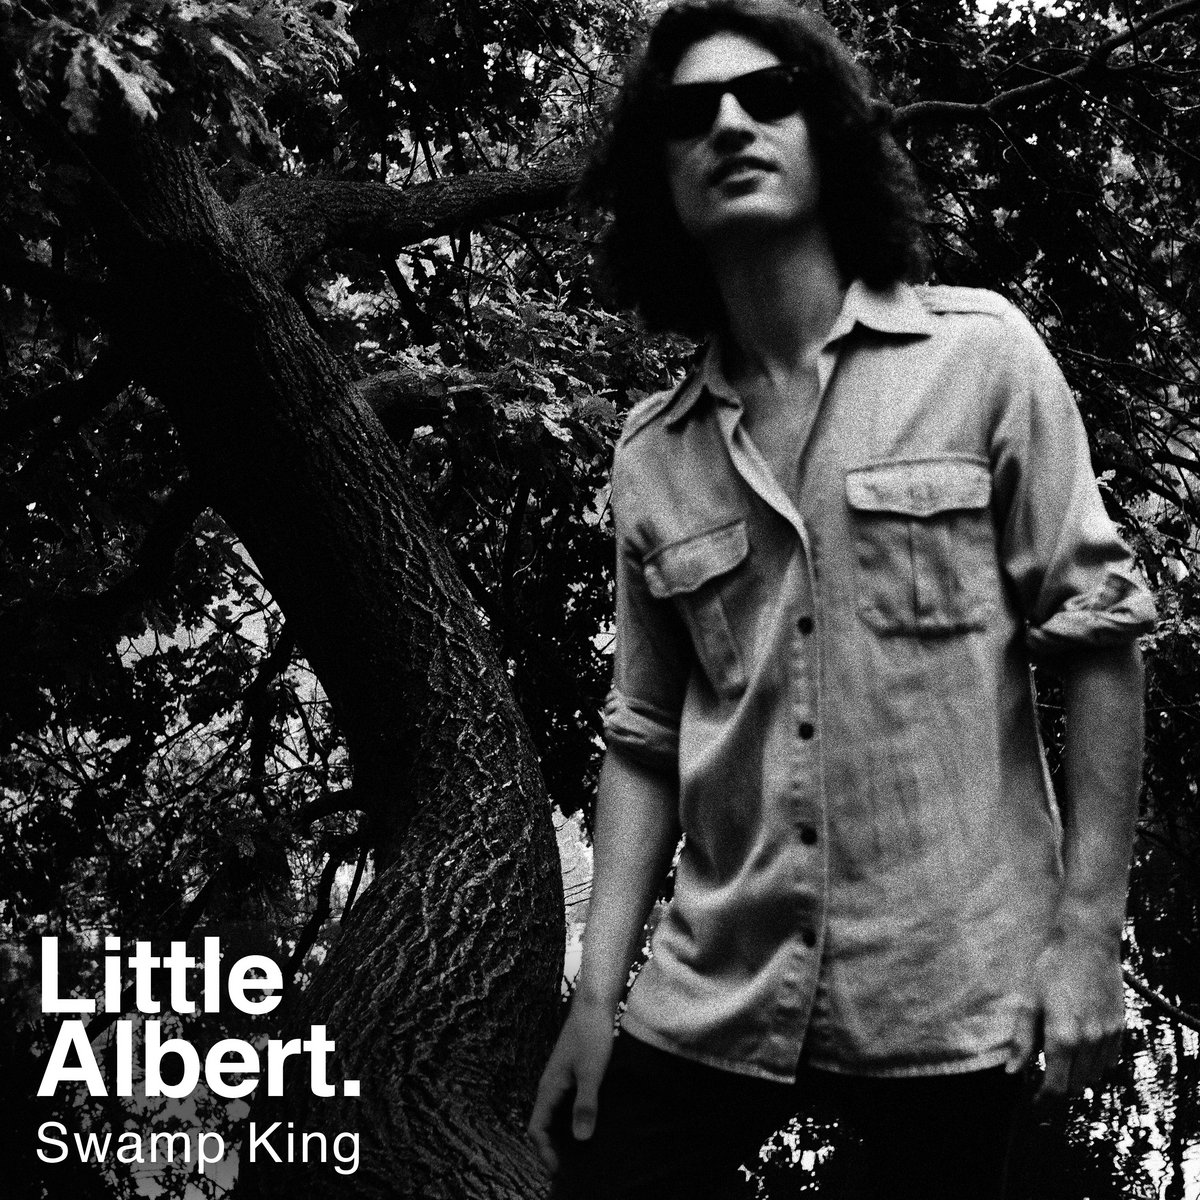 Little Albert Swamp King